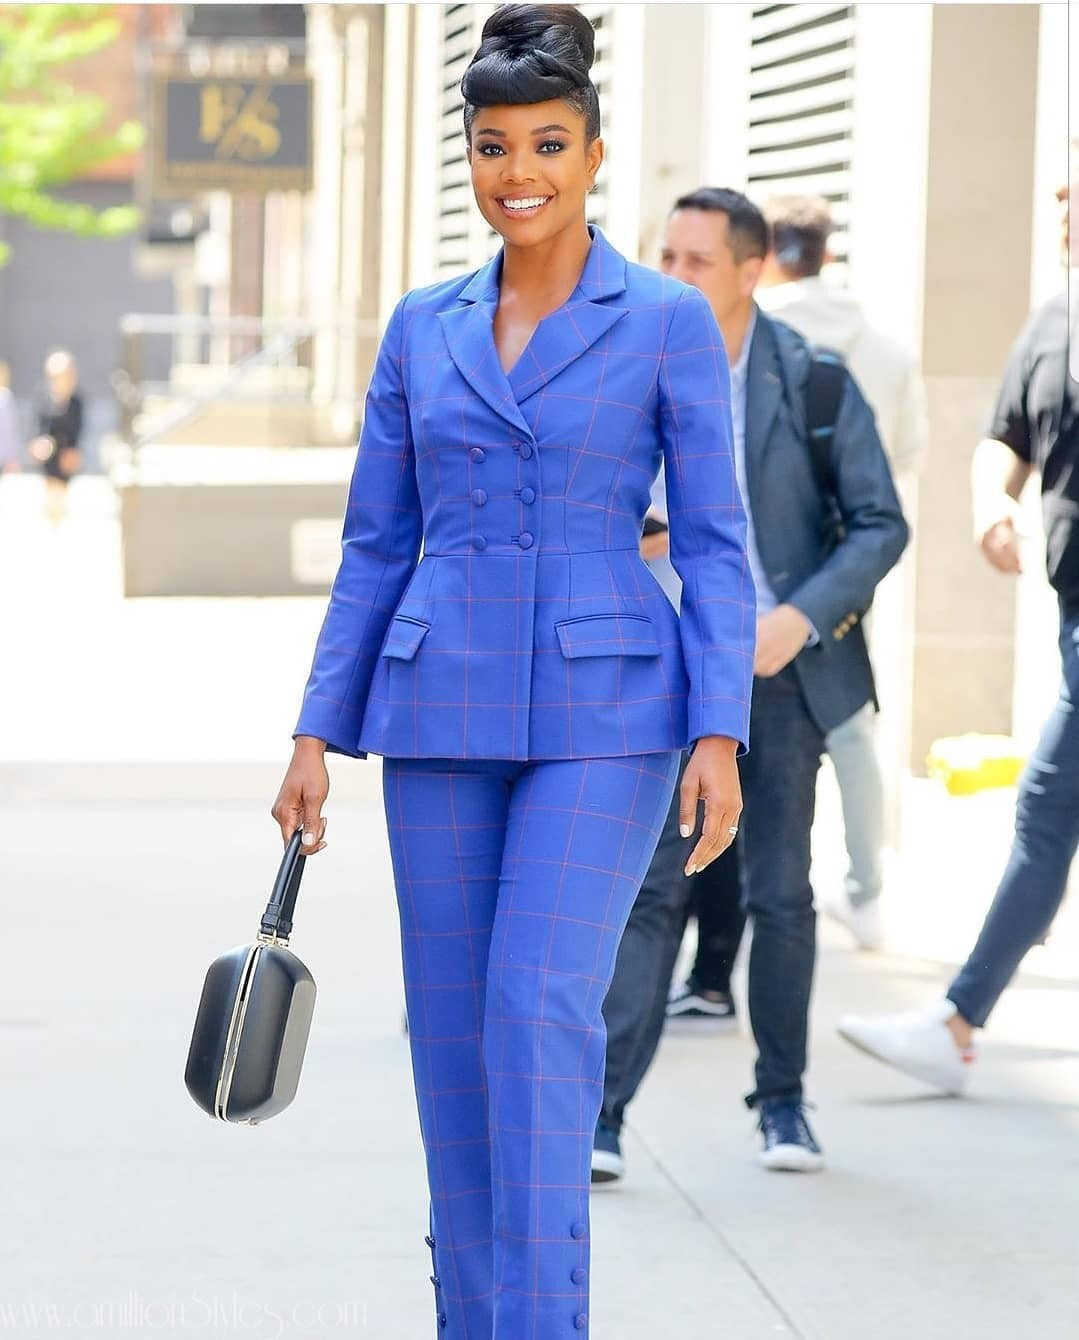 12 Hawt Corporate Styles-(This Is How To Start The Week On A Right Note)